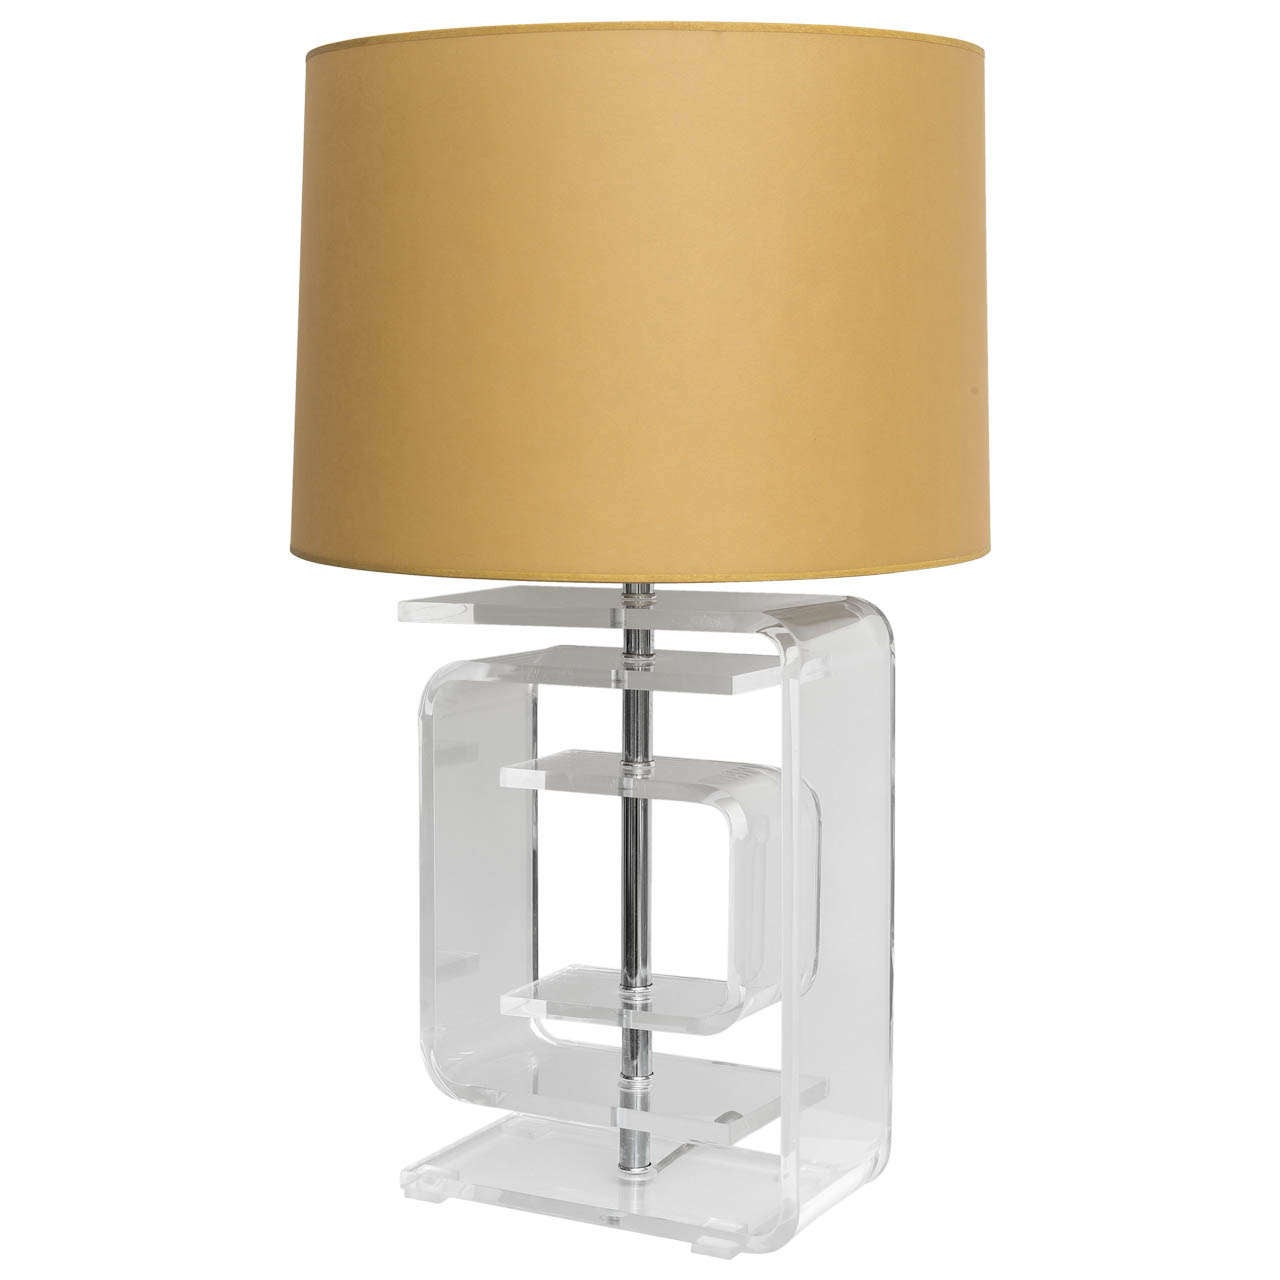 Mid century lucite table lamp at 1stdibs for F k a table lamp